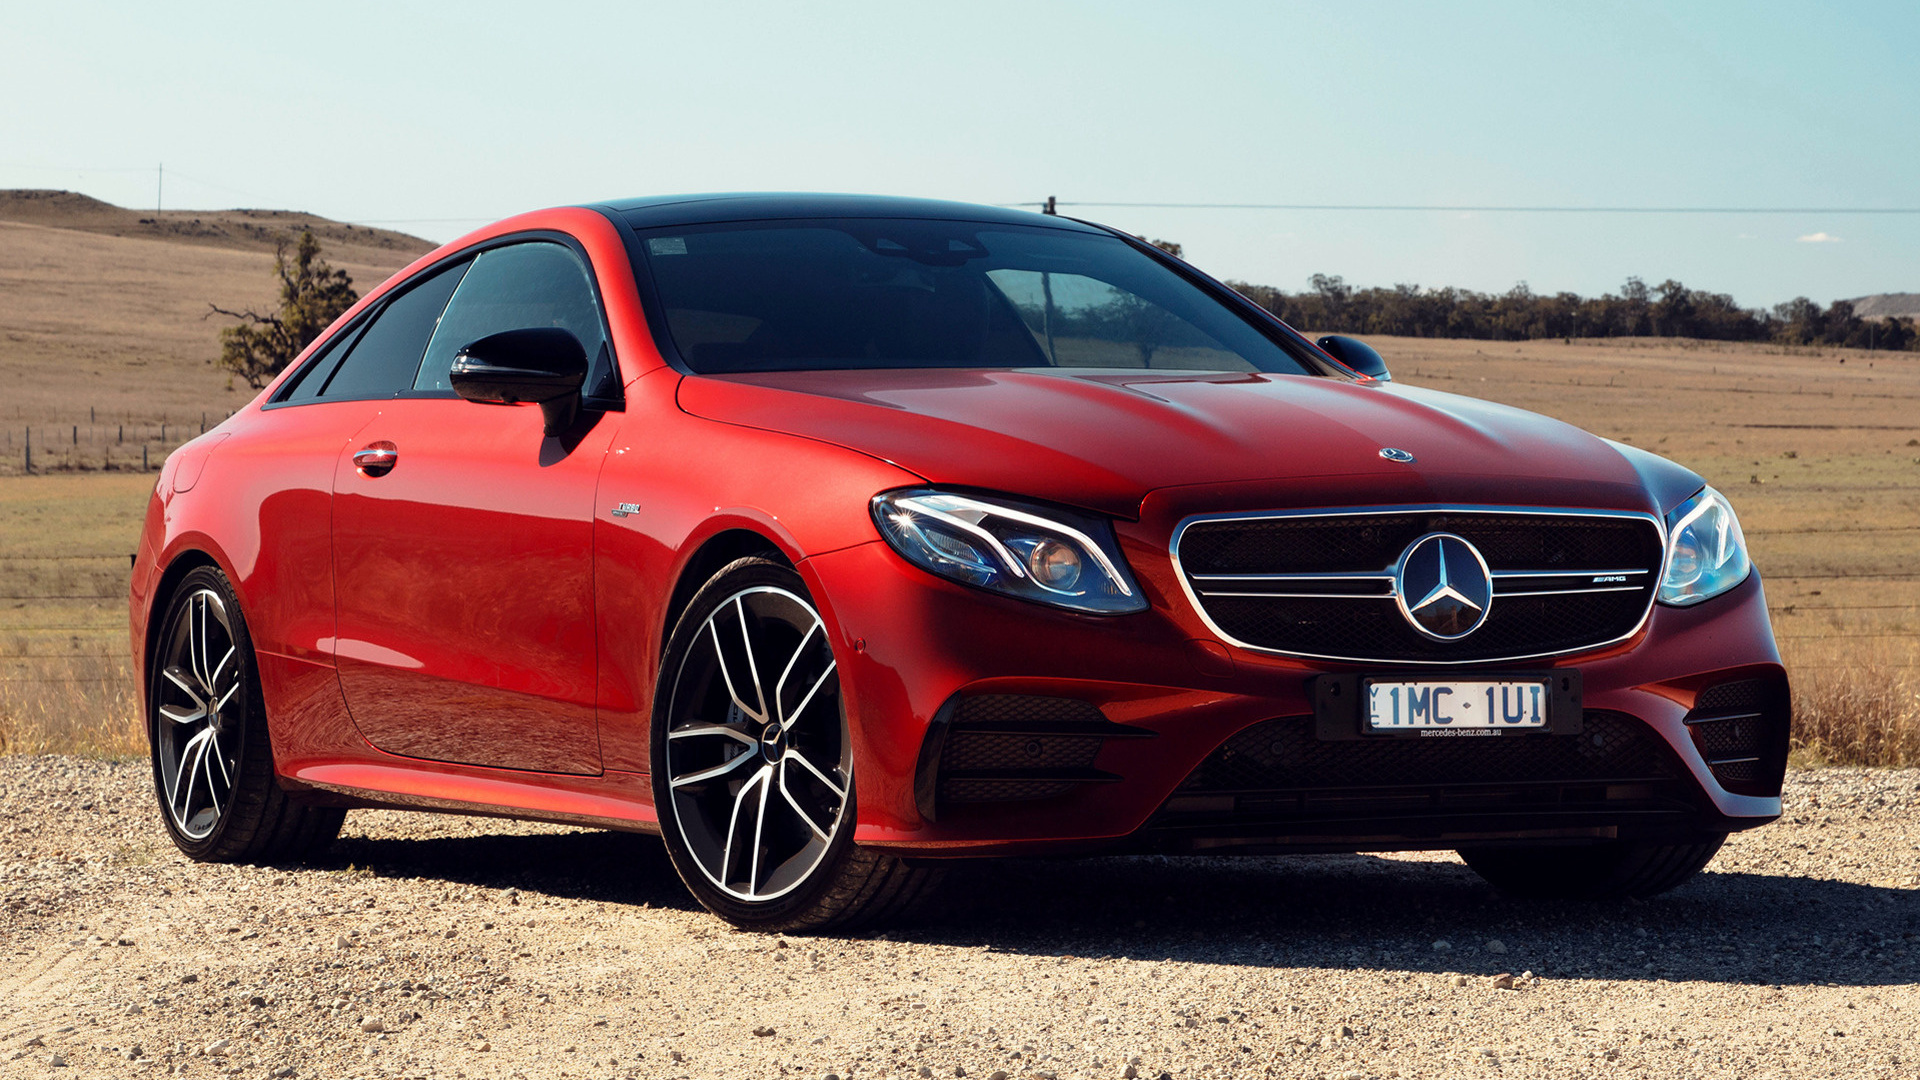 2016 Hyundai Genesis Coupe >> 2018 Mercedes-AMG E 53 Coupe (AU) - Wallpapers and HD ...